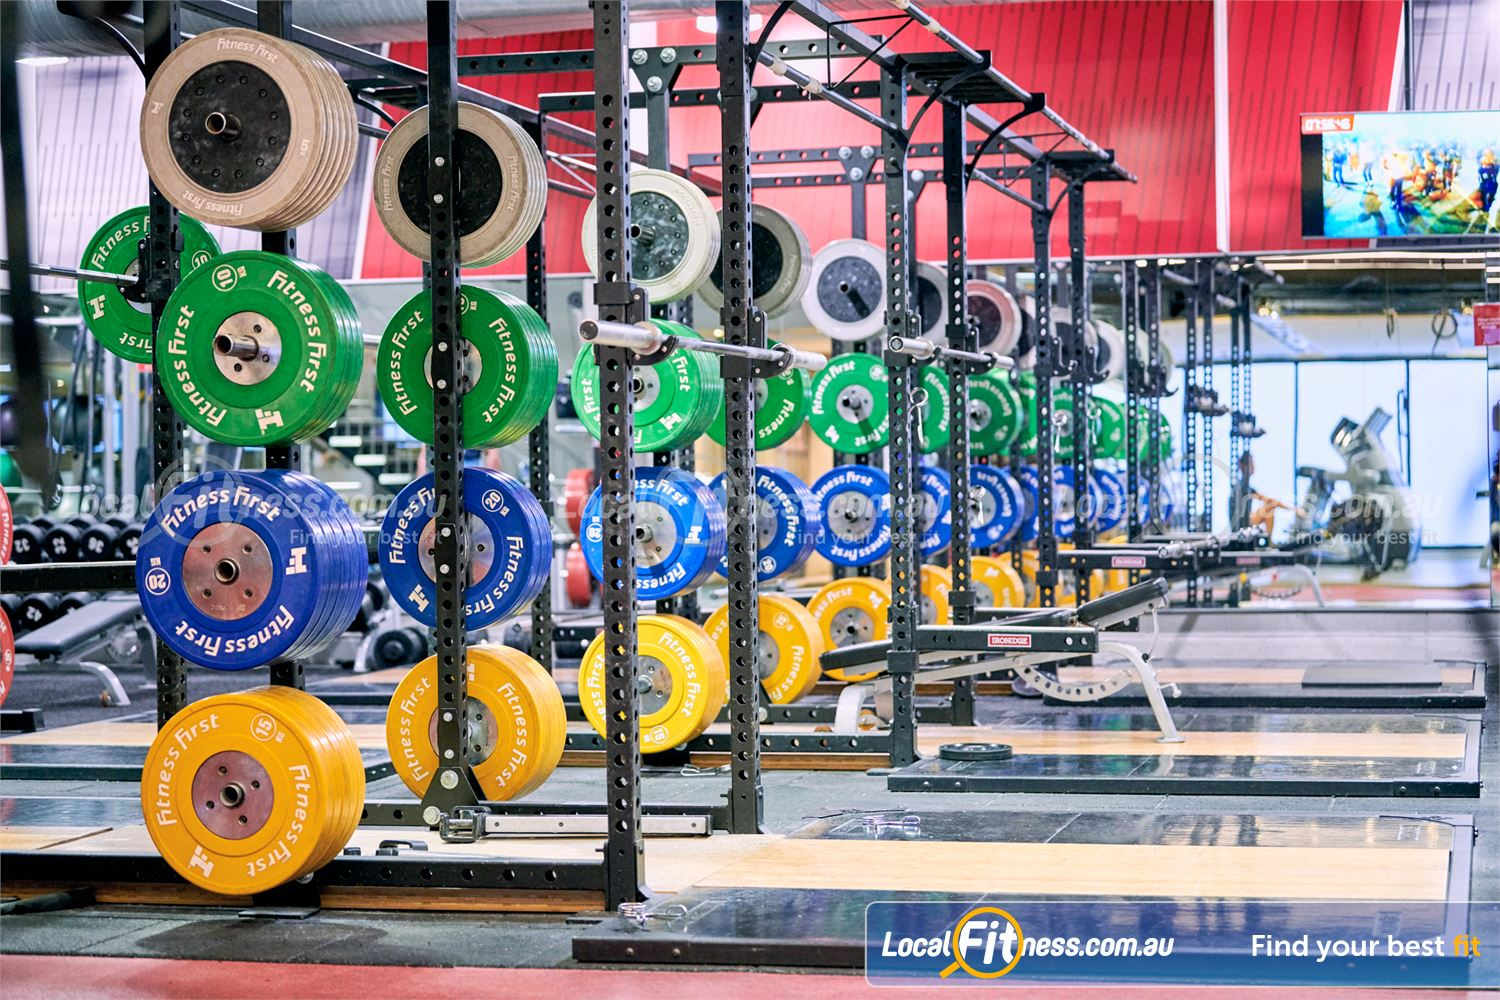 Fitness First Canberra City Canberra High-performance strength cages with Olympic lifting platforms.